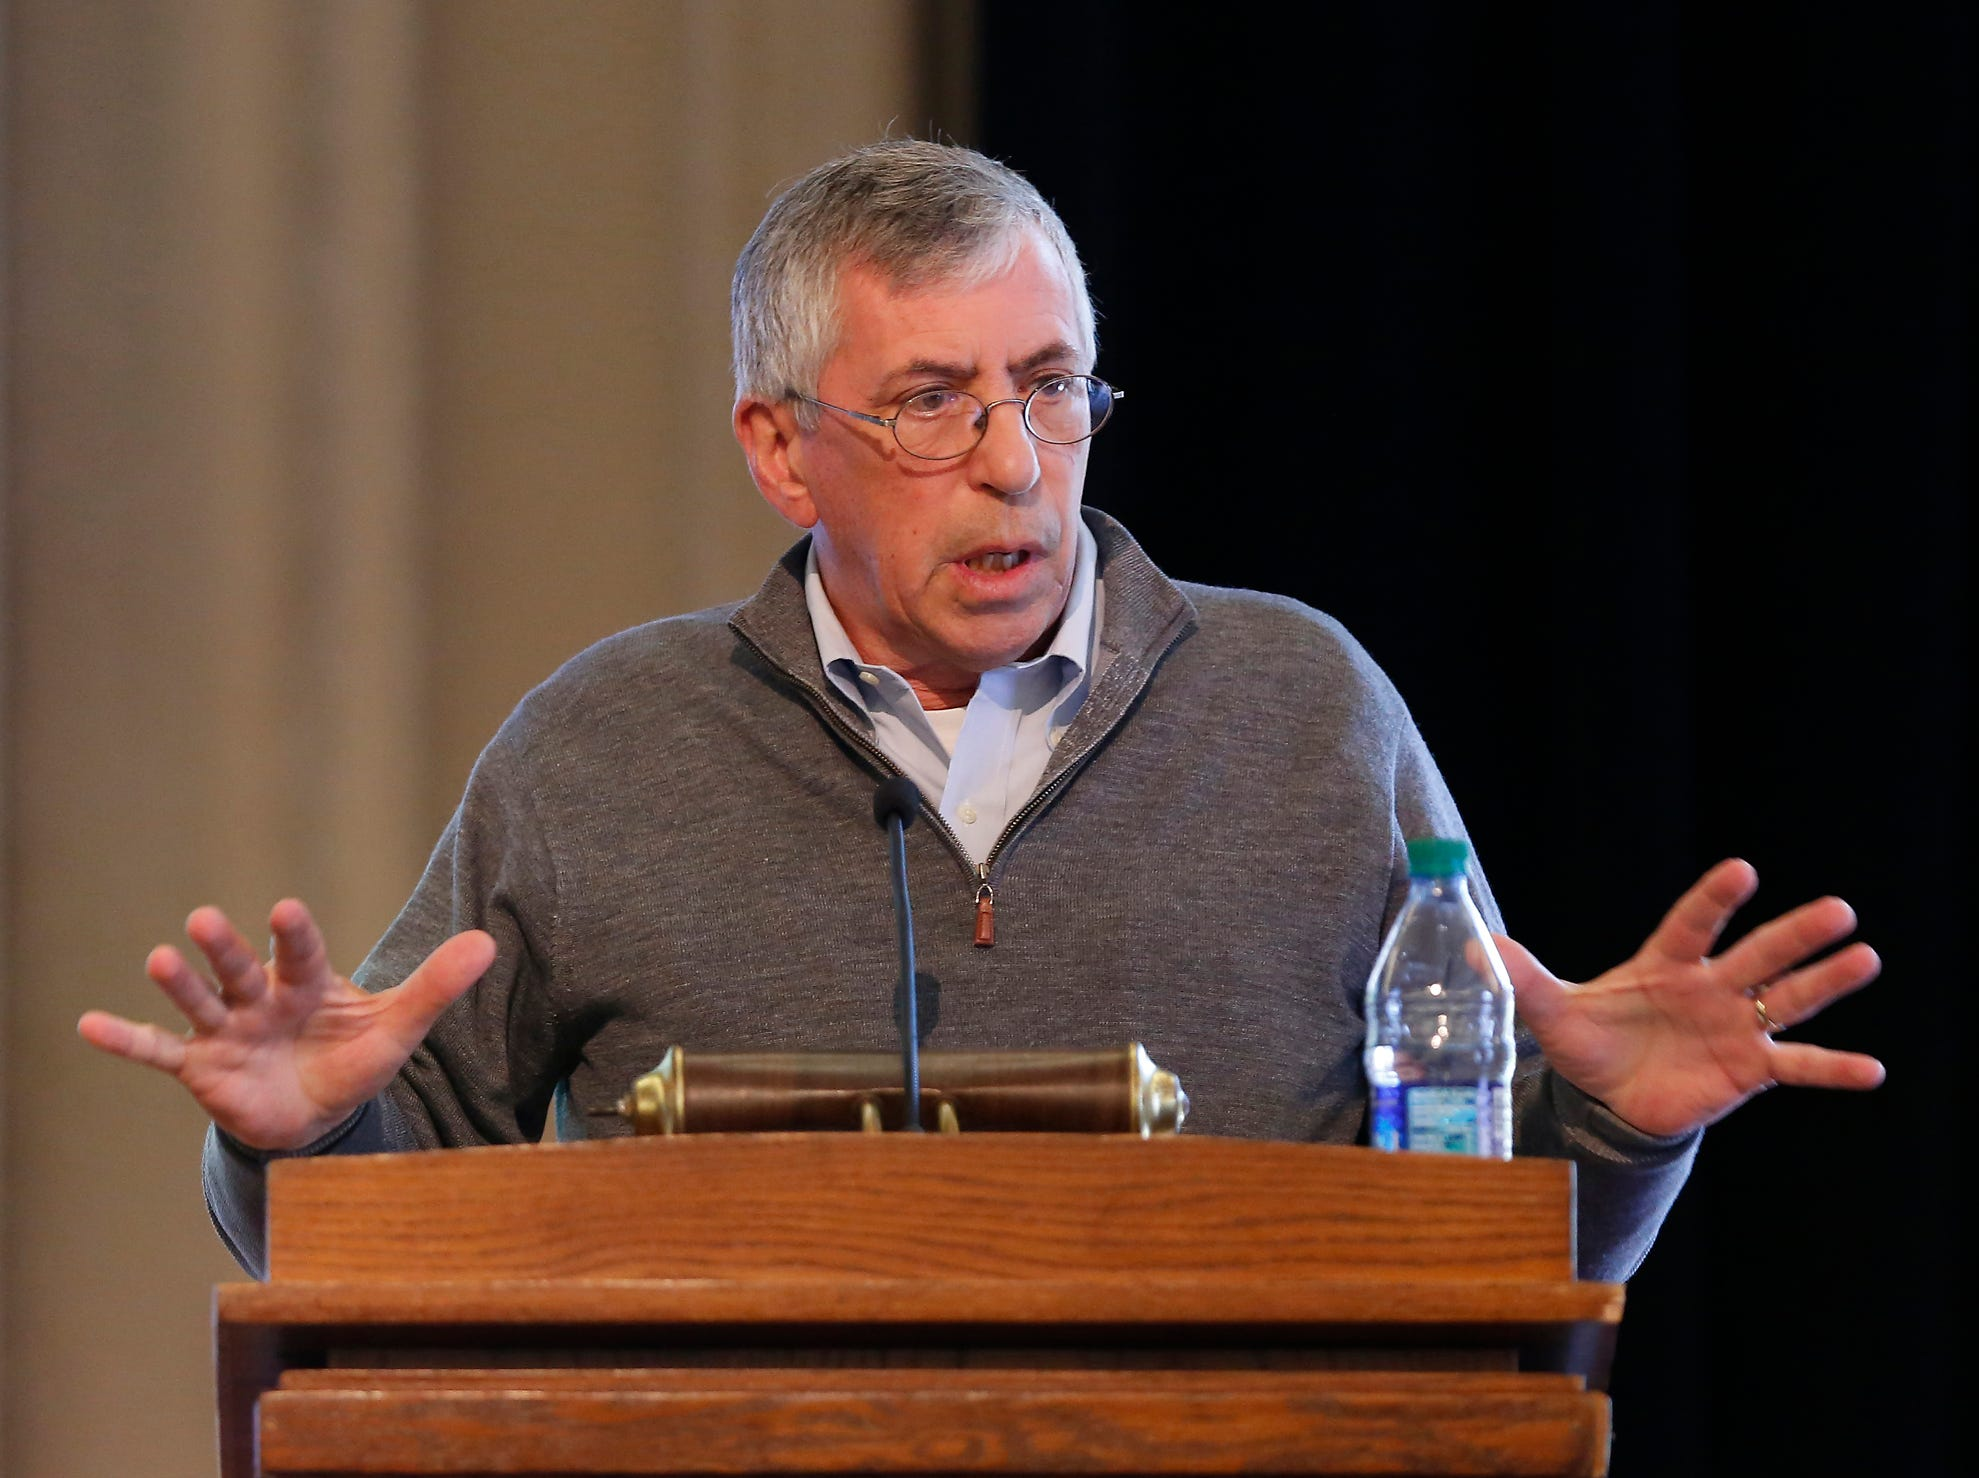 Bill Sullivan, treasurer and chief financial officer for Purdue, answers questions during a town hall meeting about changes to the healthcare benefits for university employees Wednesday, October 24, 2018, at the Purdue Memorial Union. Sullivan said savings realized from changes to healthcare benefits could be put into other endeavors, such as wages.